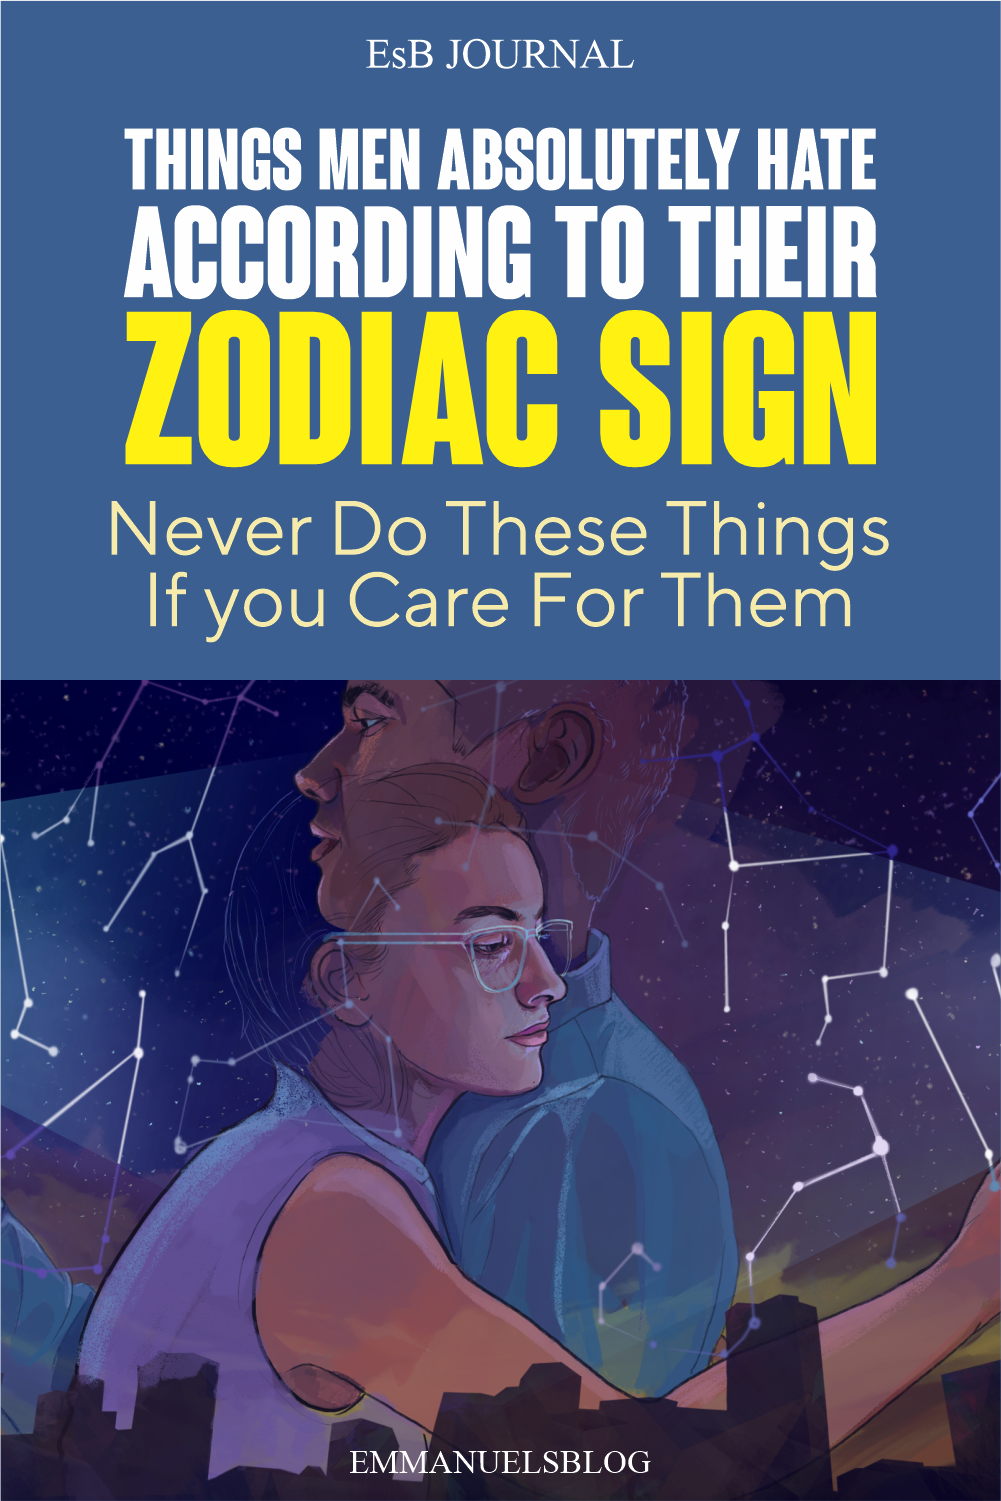 Things Men Absolutely Hate According To Their Zodiac Sign, Never Do These Things If you Care For Them!